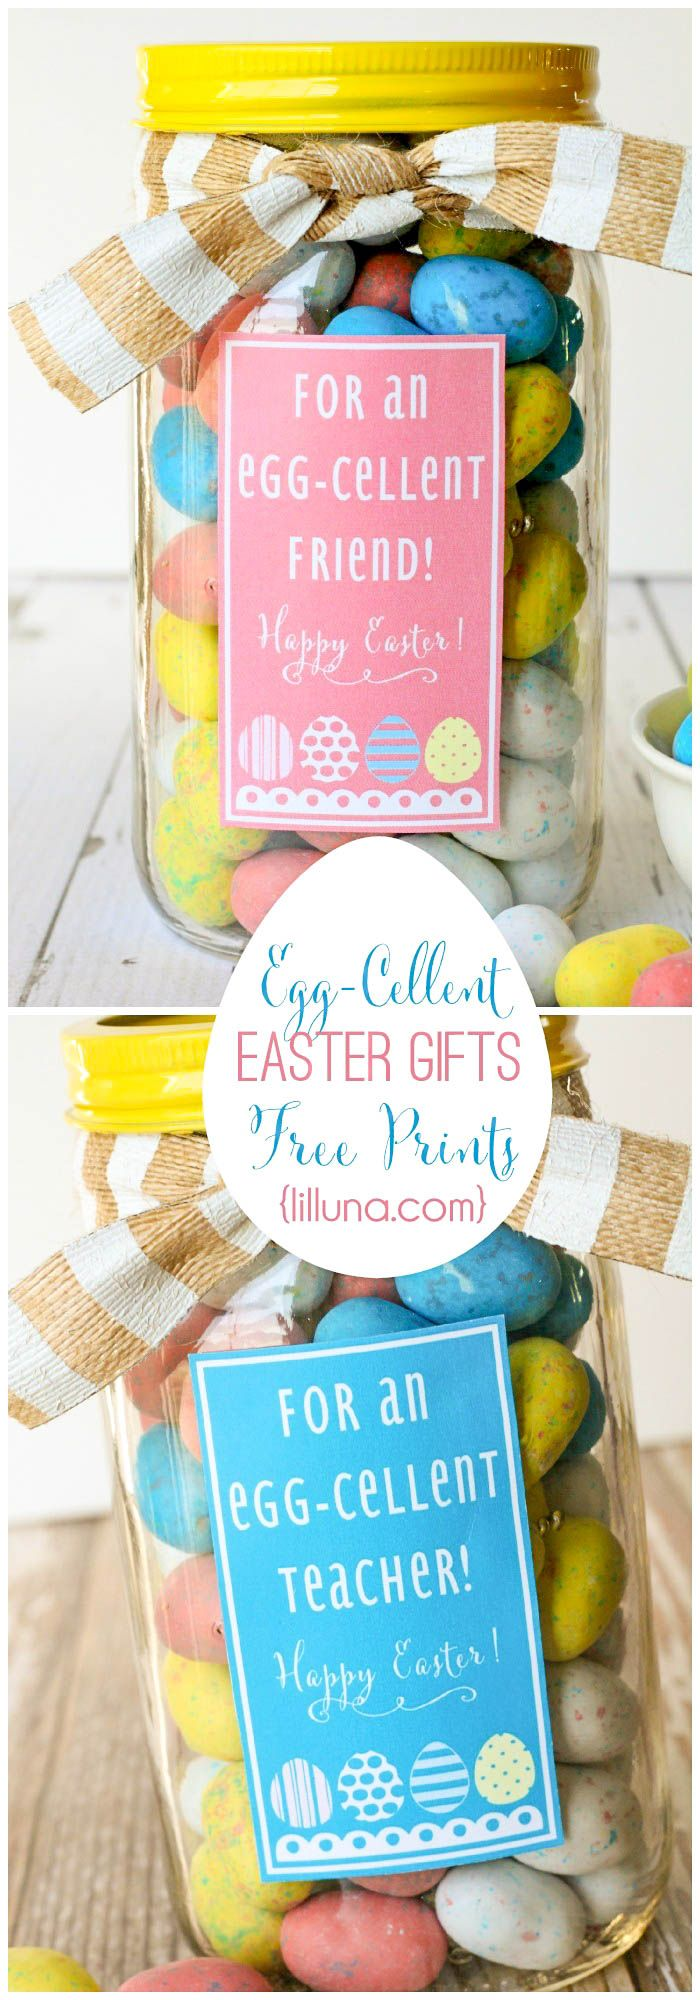 Egg cellent easter gift ideas cute and inexpensive lilluna egg cellent easter gift ideas cute and inexpensive free prints with labels for teachers and friends negle Image collections